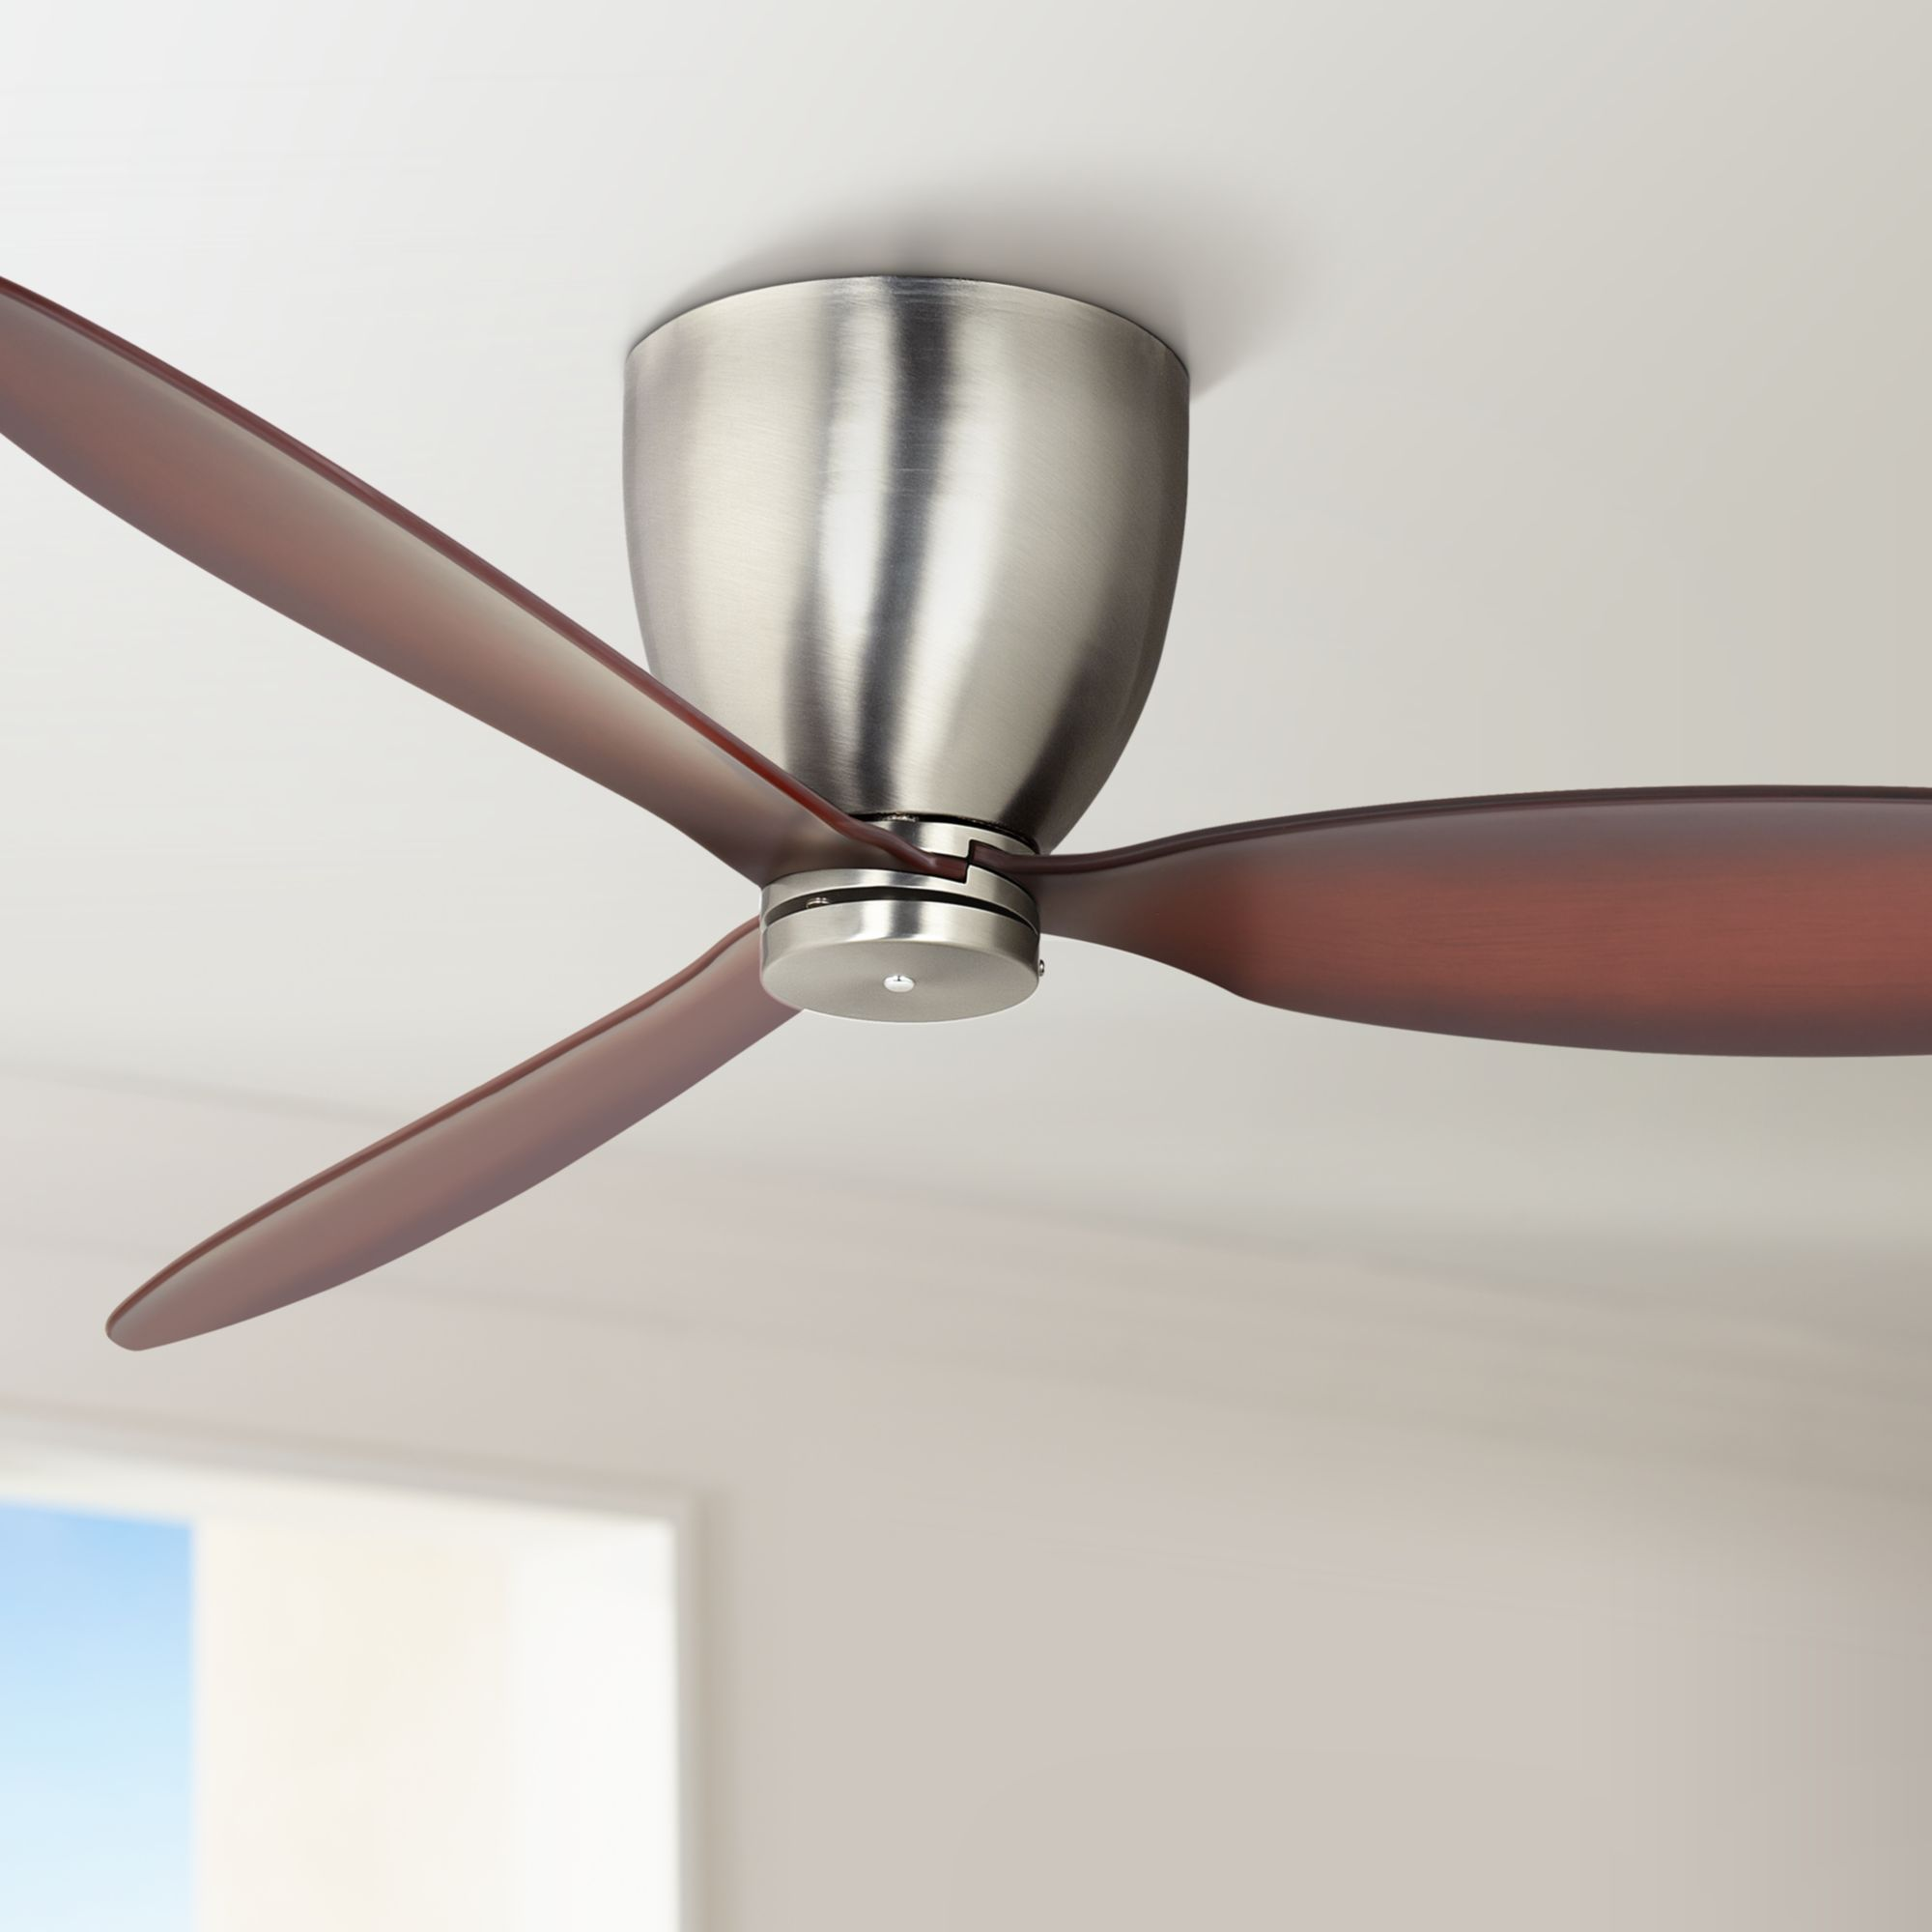 52 Casa Vieja Modern Hugger Ceiling Fan With Wall Control Flush Mount Brushed Steel For Living Room Kitchen Bedroom Family Dining